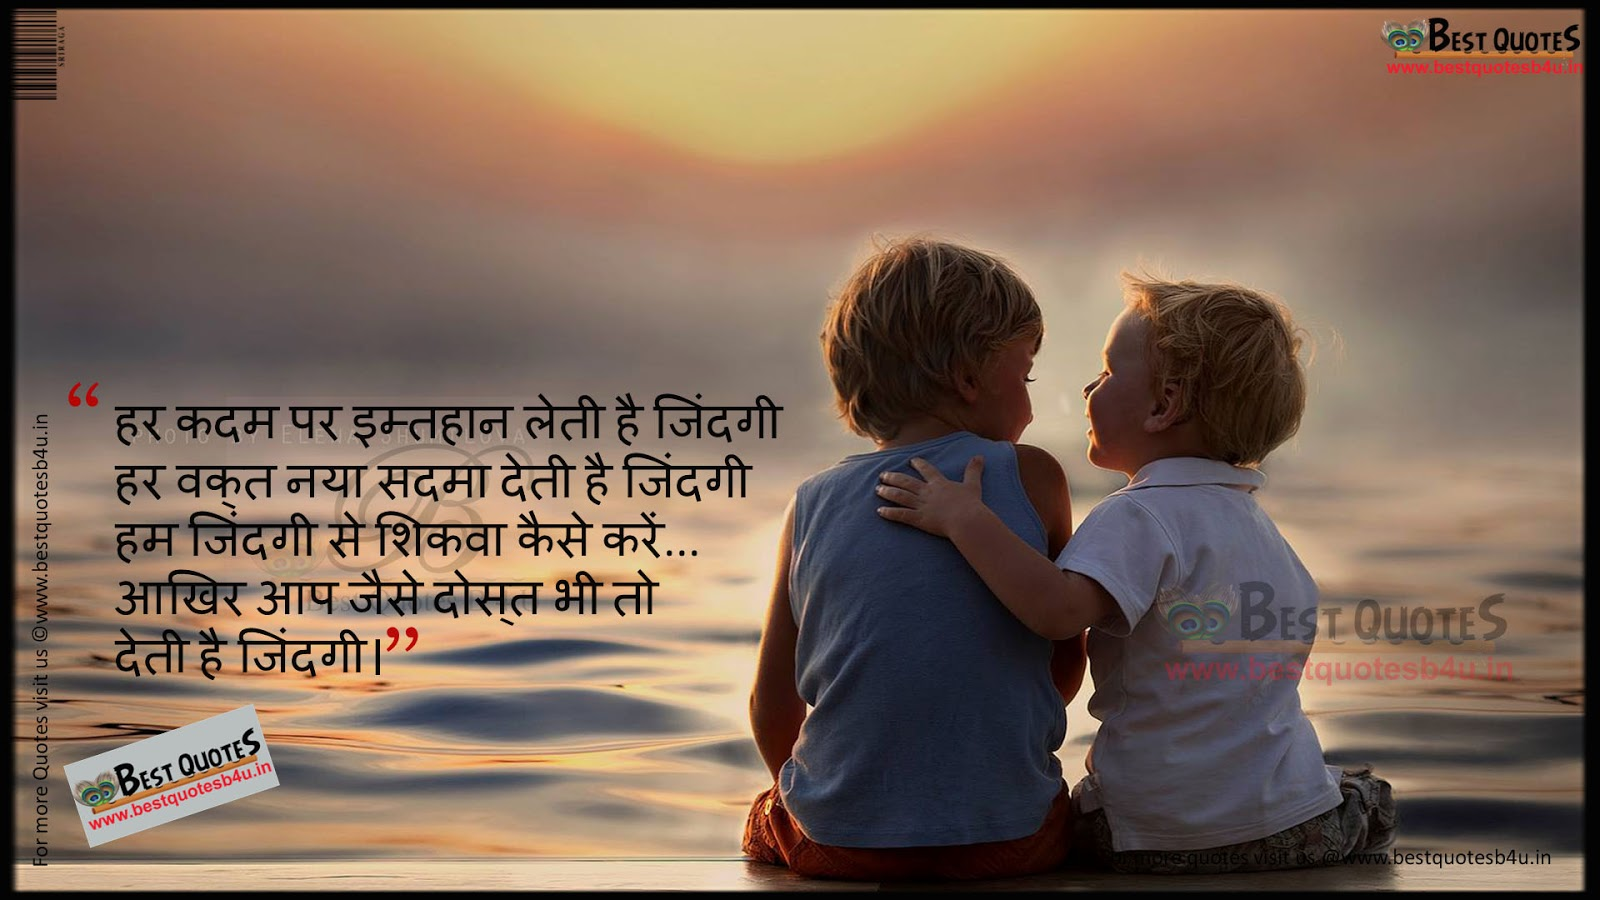 Heart Touching Wallpapers With Quotes For Friends Romantic Quotes